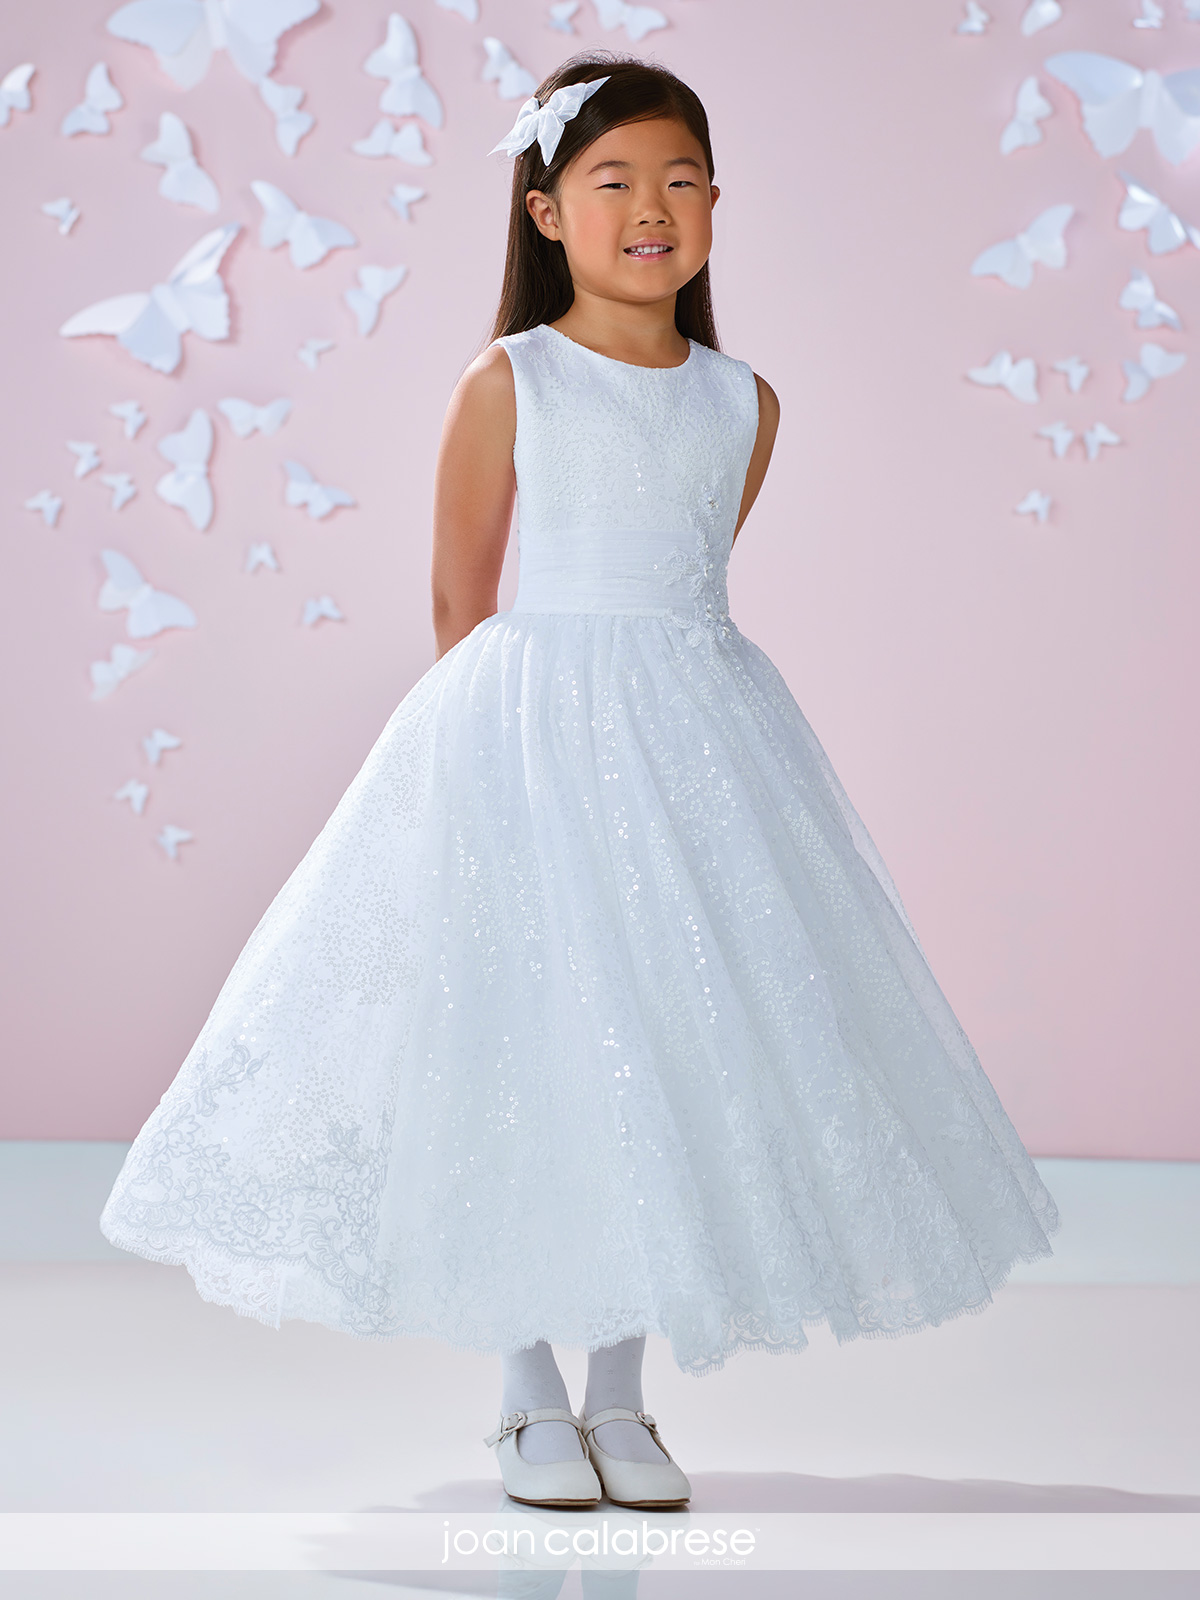 dafb9e6f799 Communion Dresses - Joan Calabrese 2018 Collection